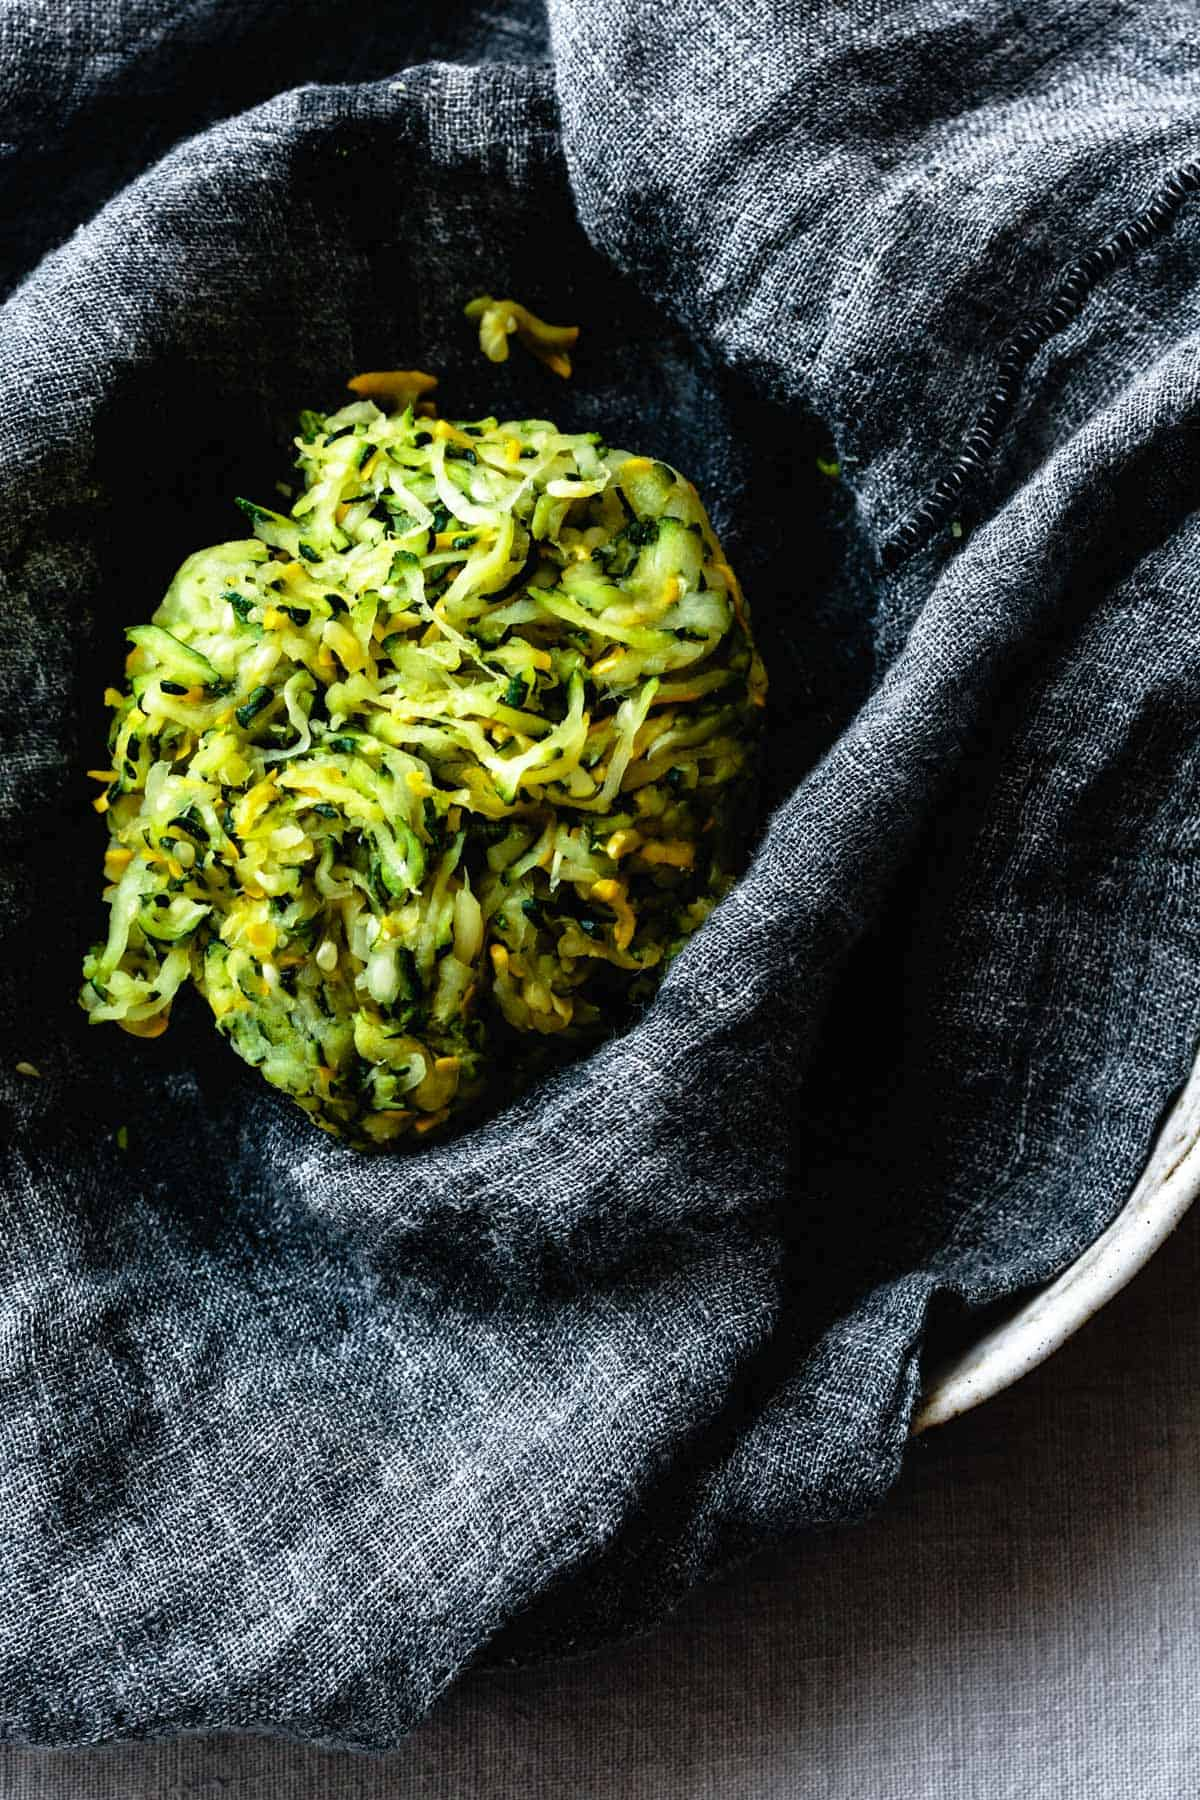 Dried shredded summer squash for Gluten-Free Zucchini Fritters